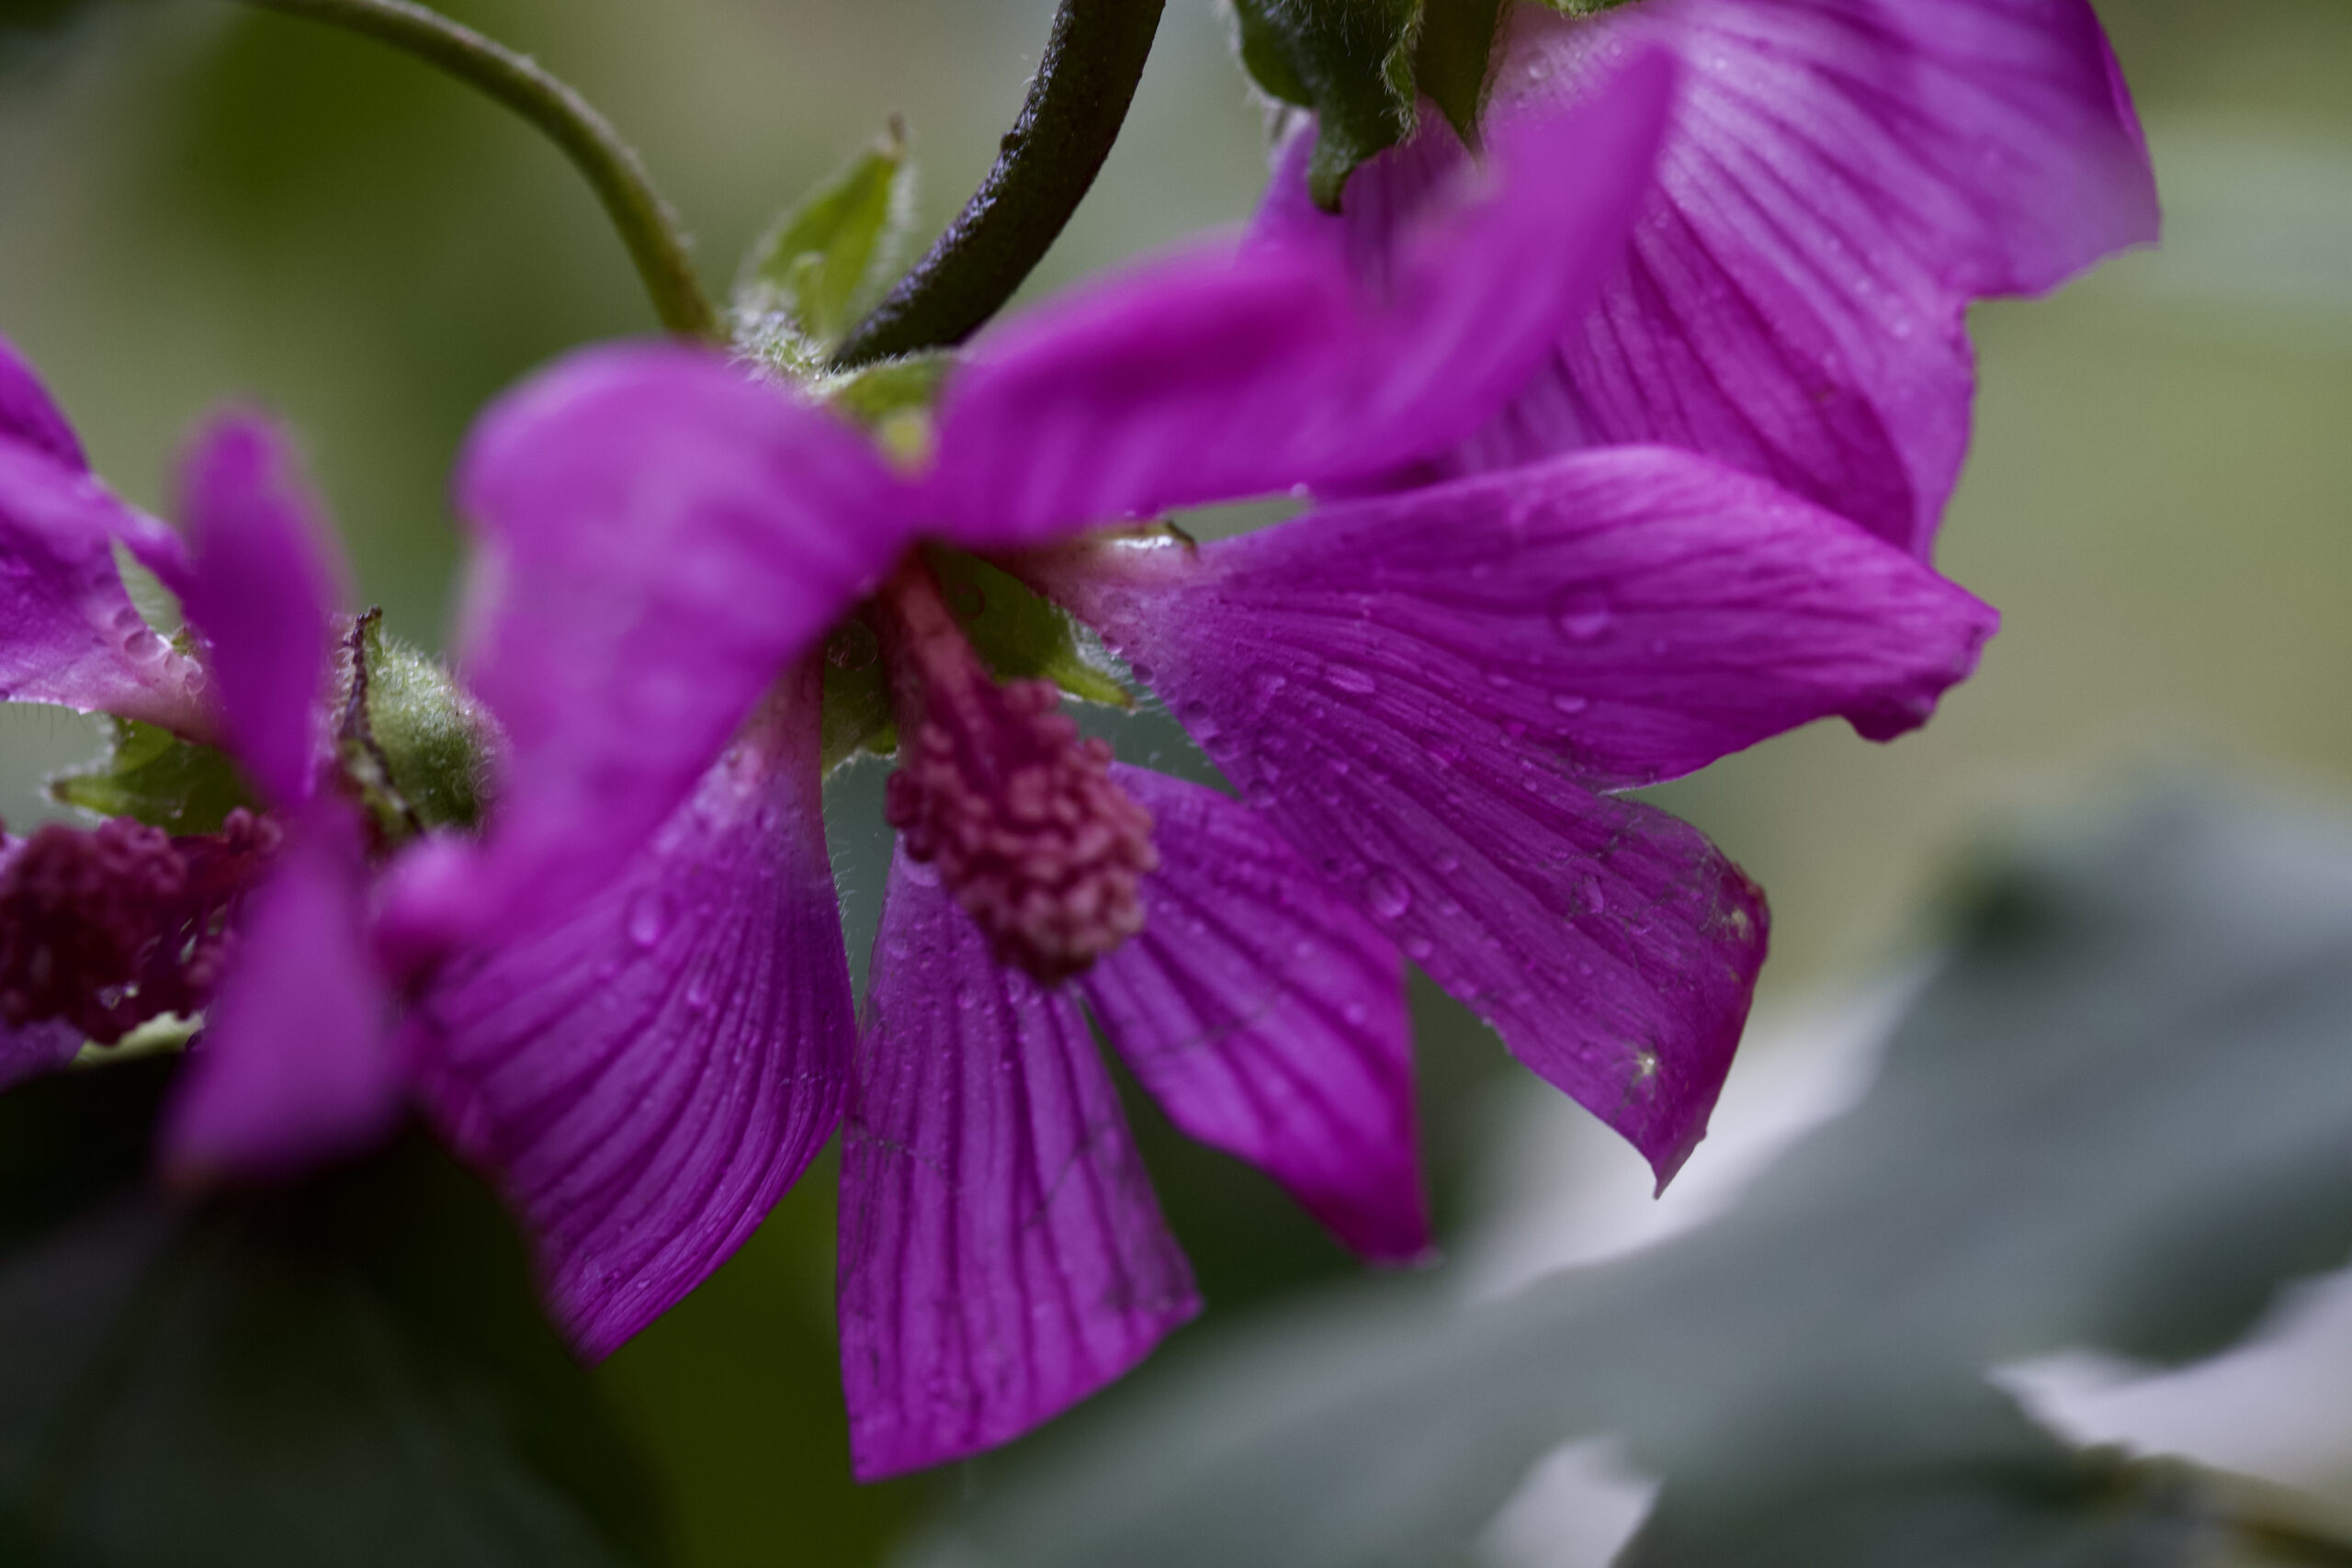 Three purple flowers covered in dew